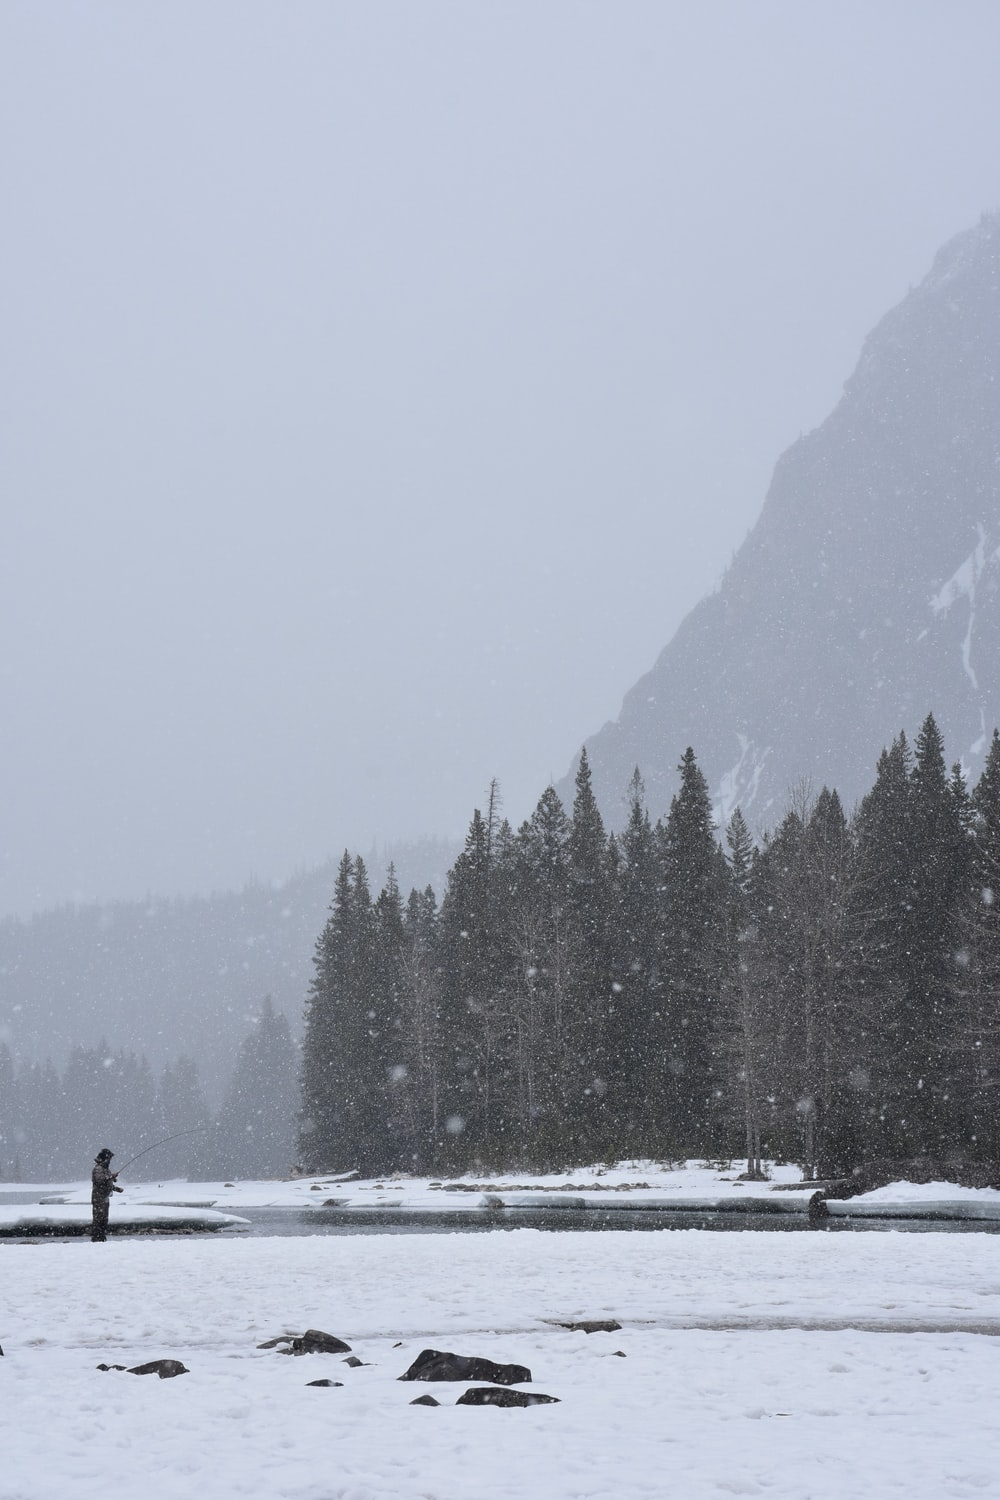 person fishing near body of water during snow